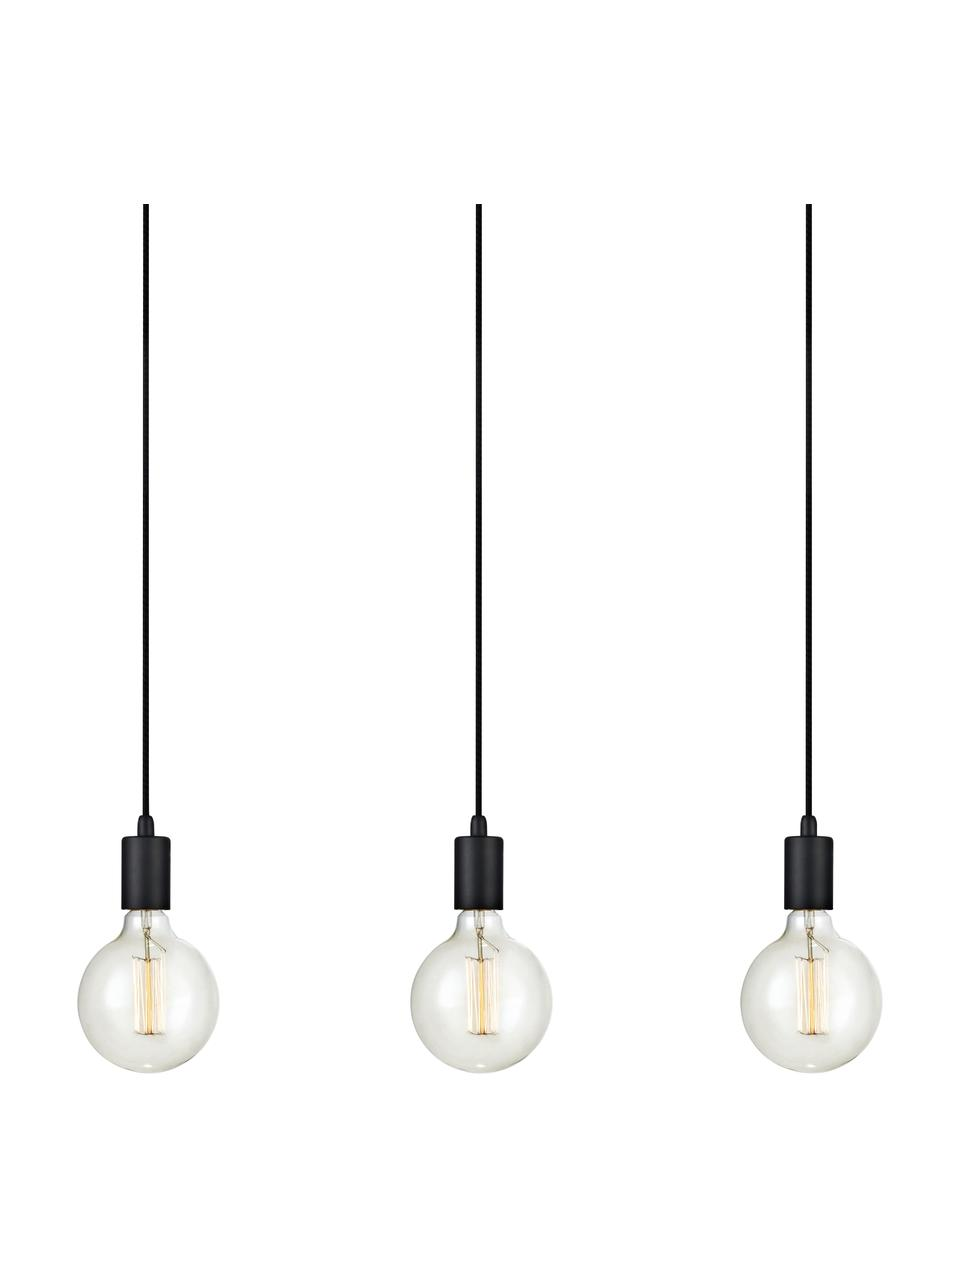 Suspension industrielle 3 lampes ampoule nue Sky, Noir